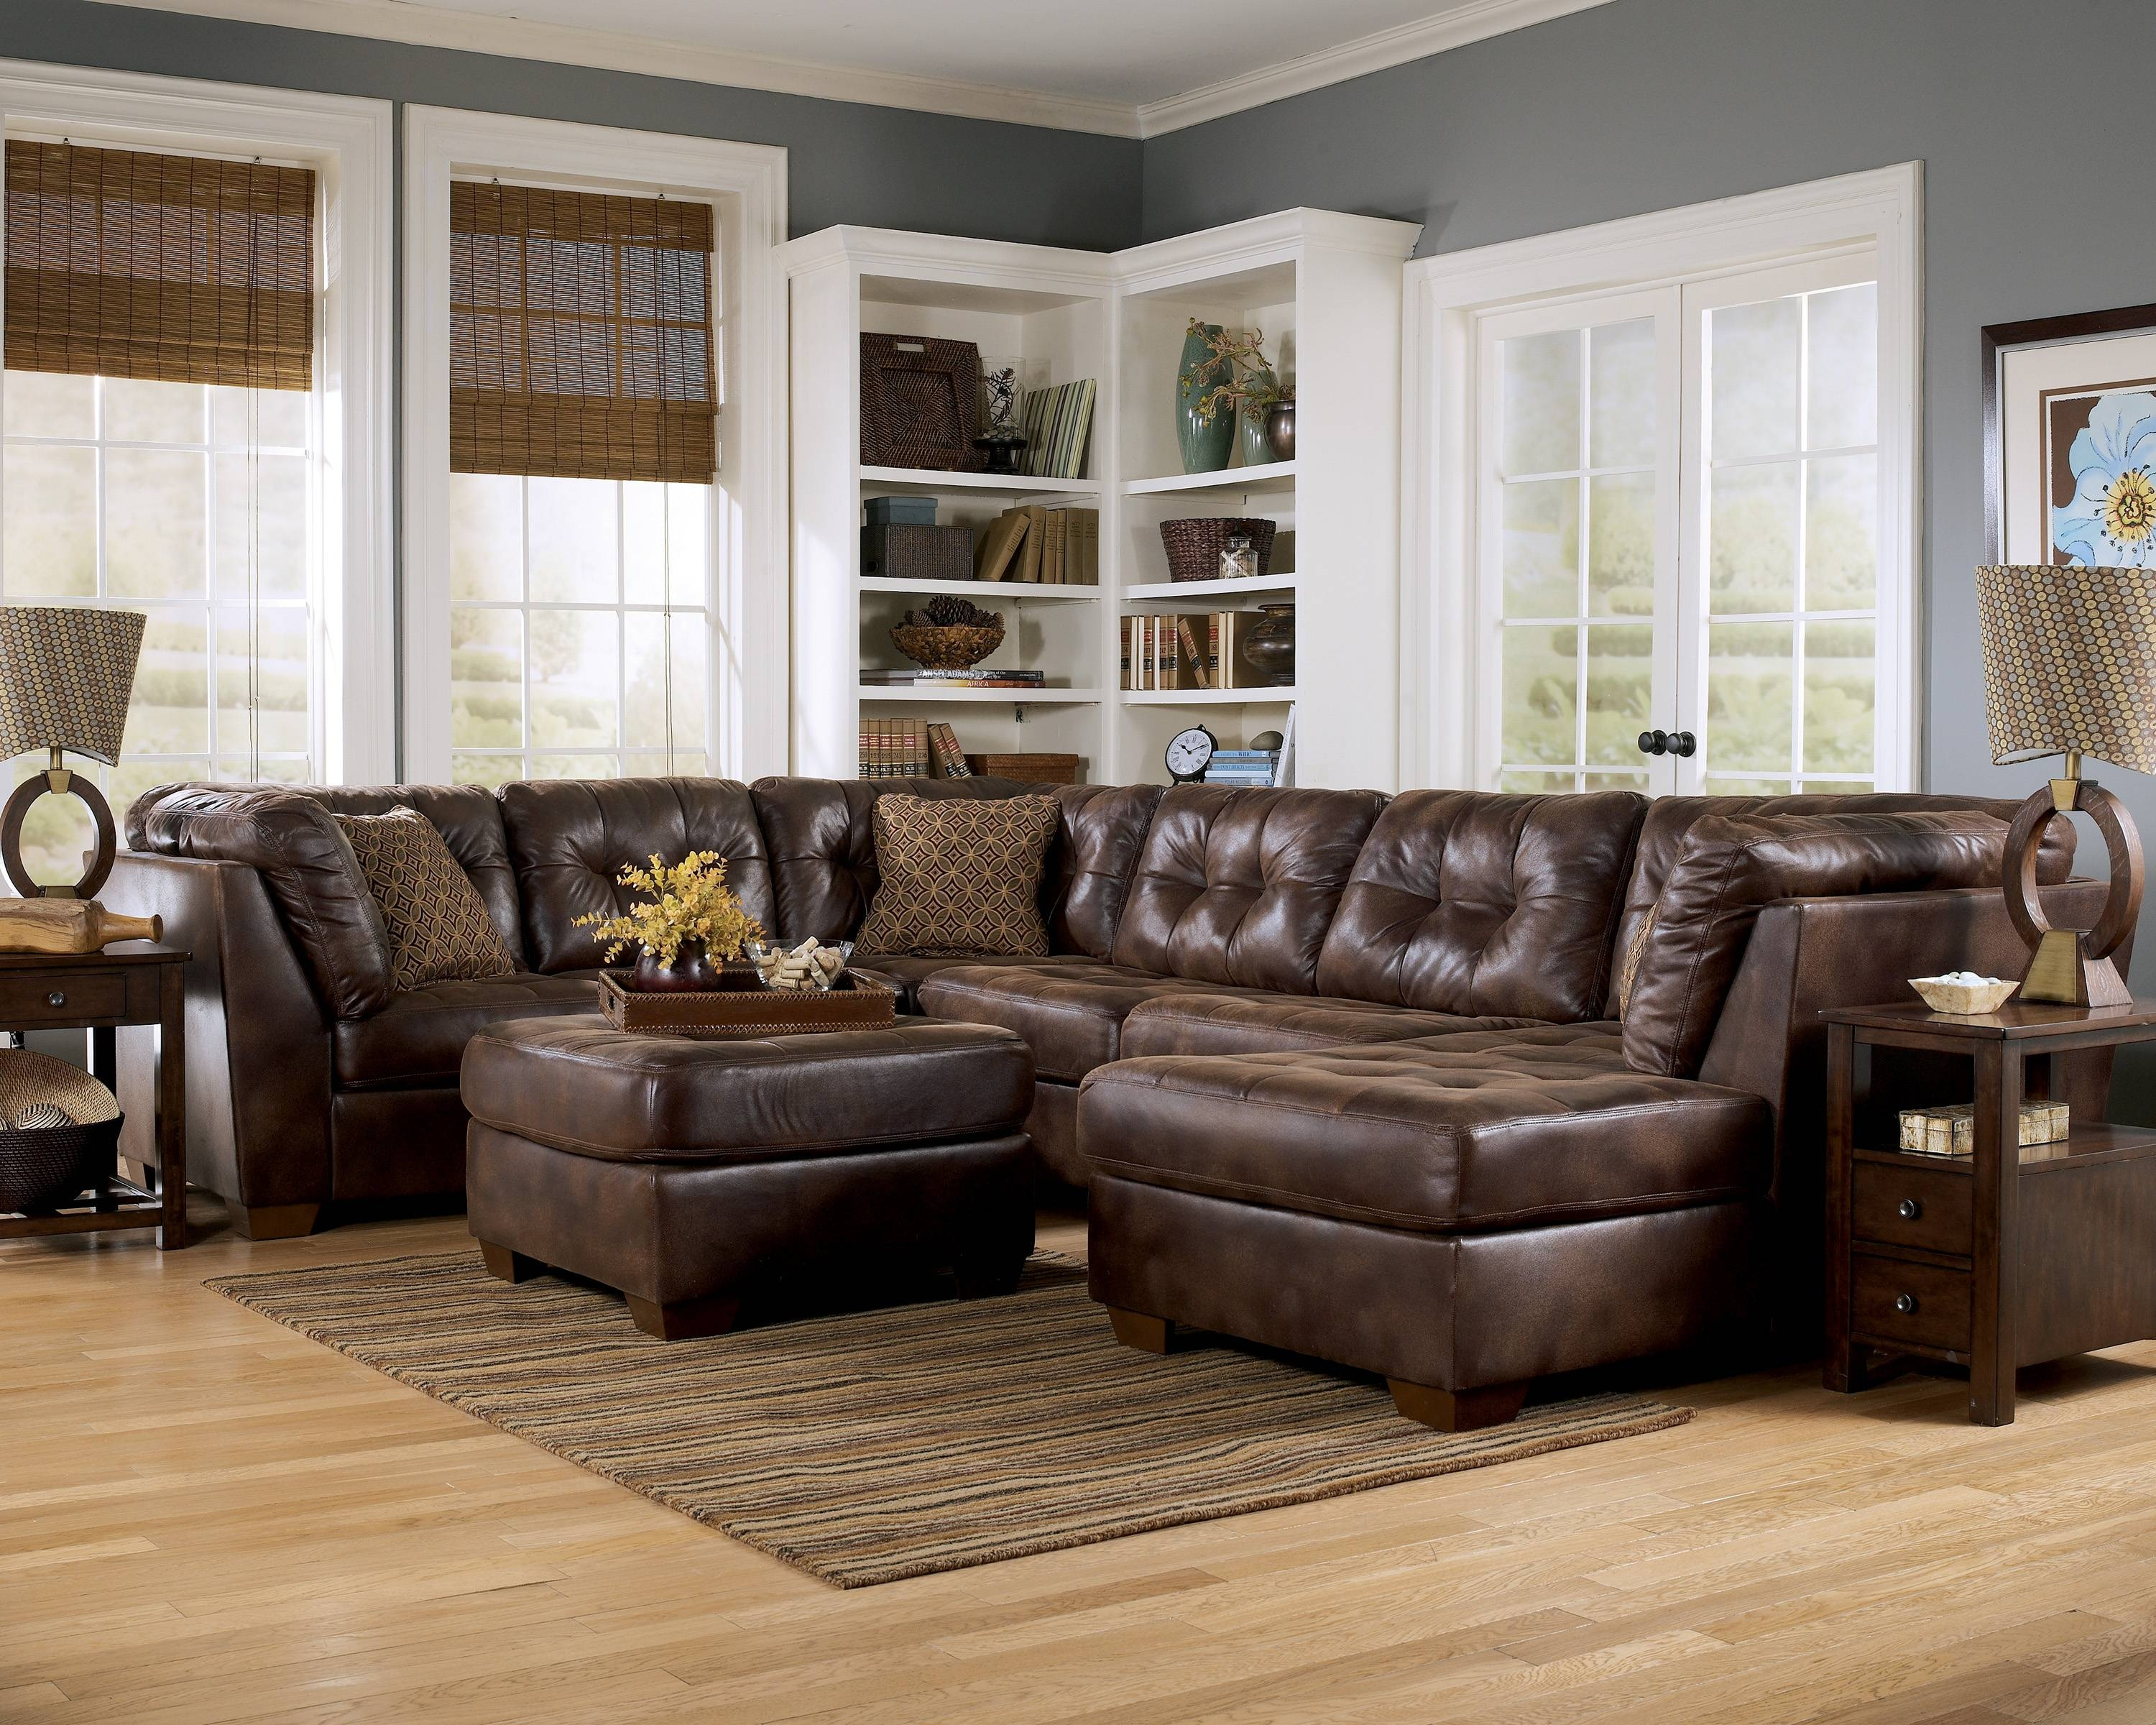 Ashley Furniture Brown Corduroy Sectional & Sofas Inspiring